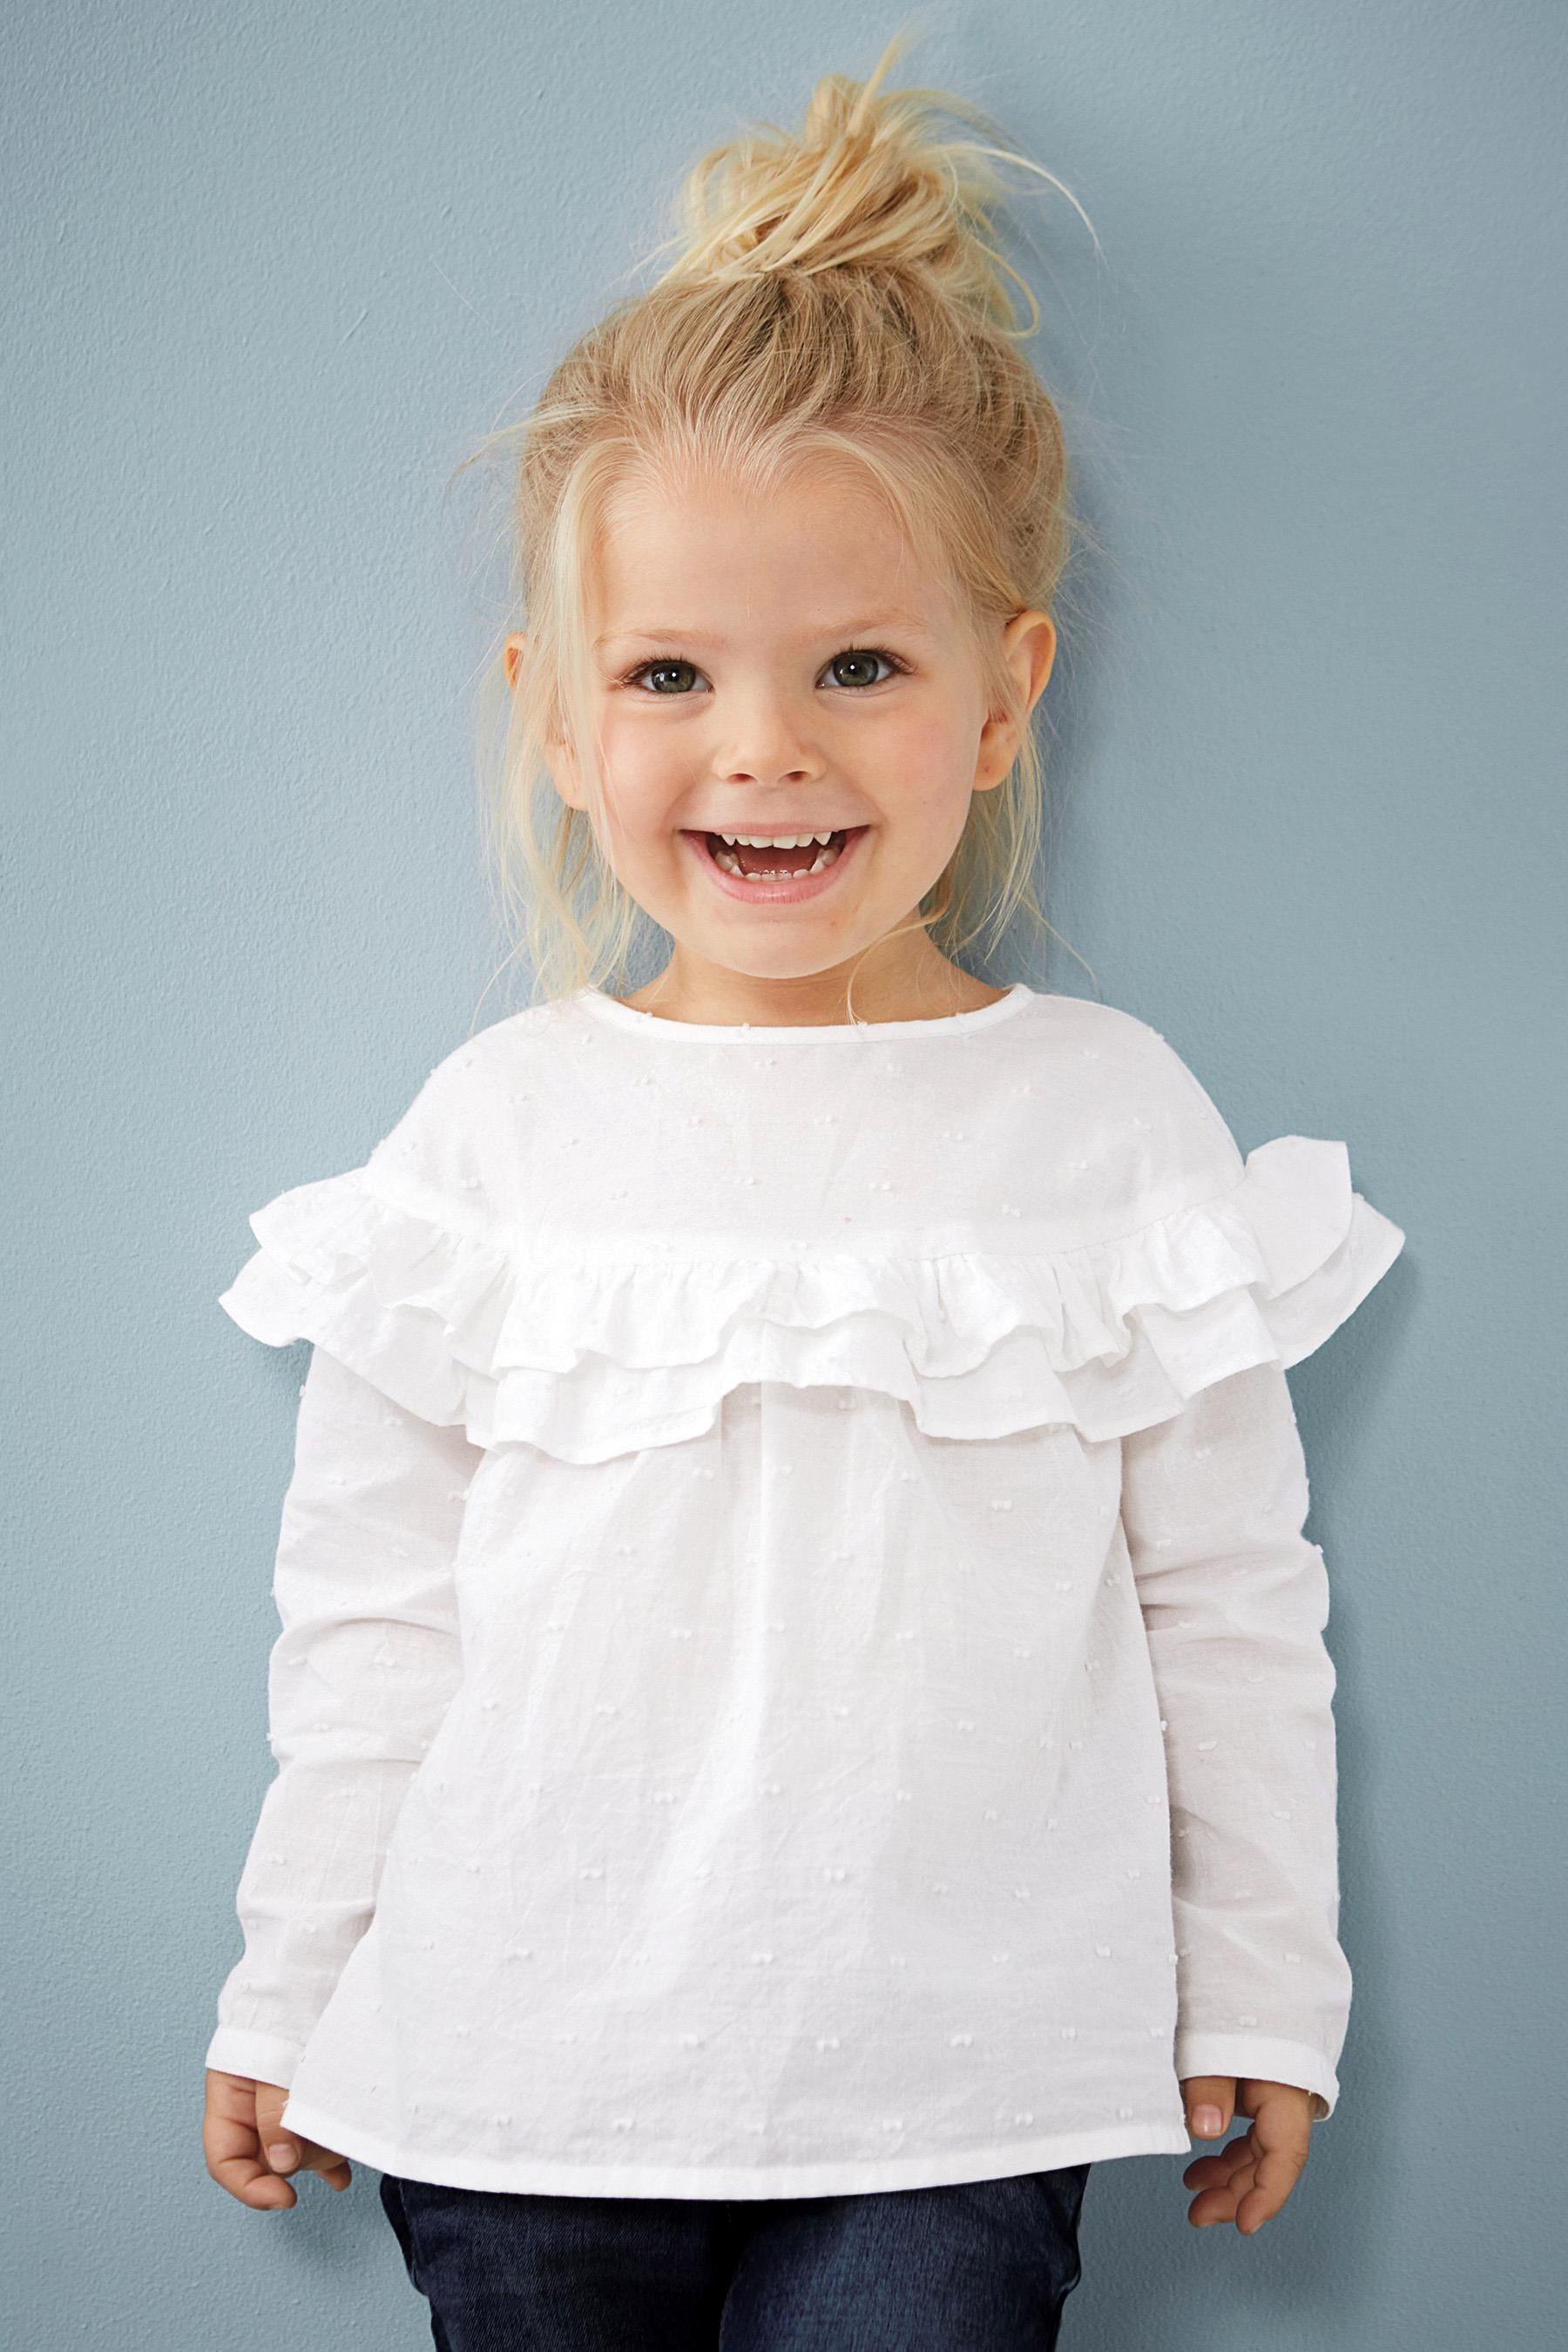 Boy hairstyle highlight buy white ruffle blouse mthsyrs from next netherlands  moda